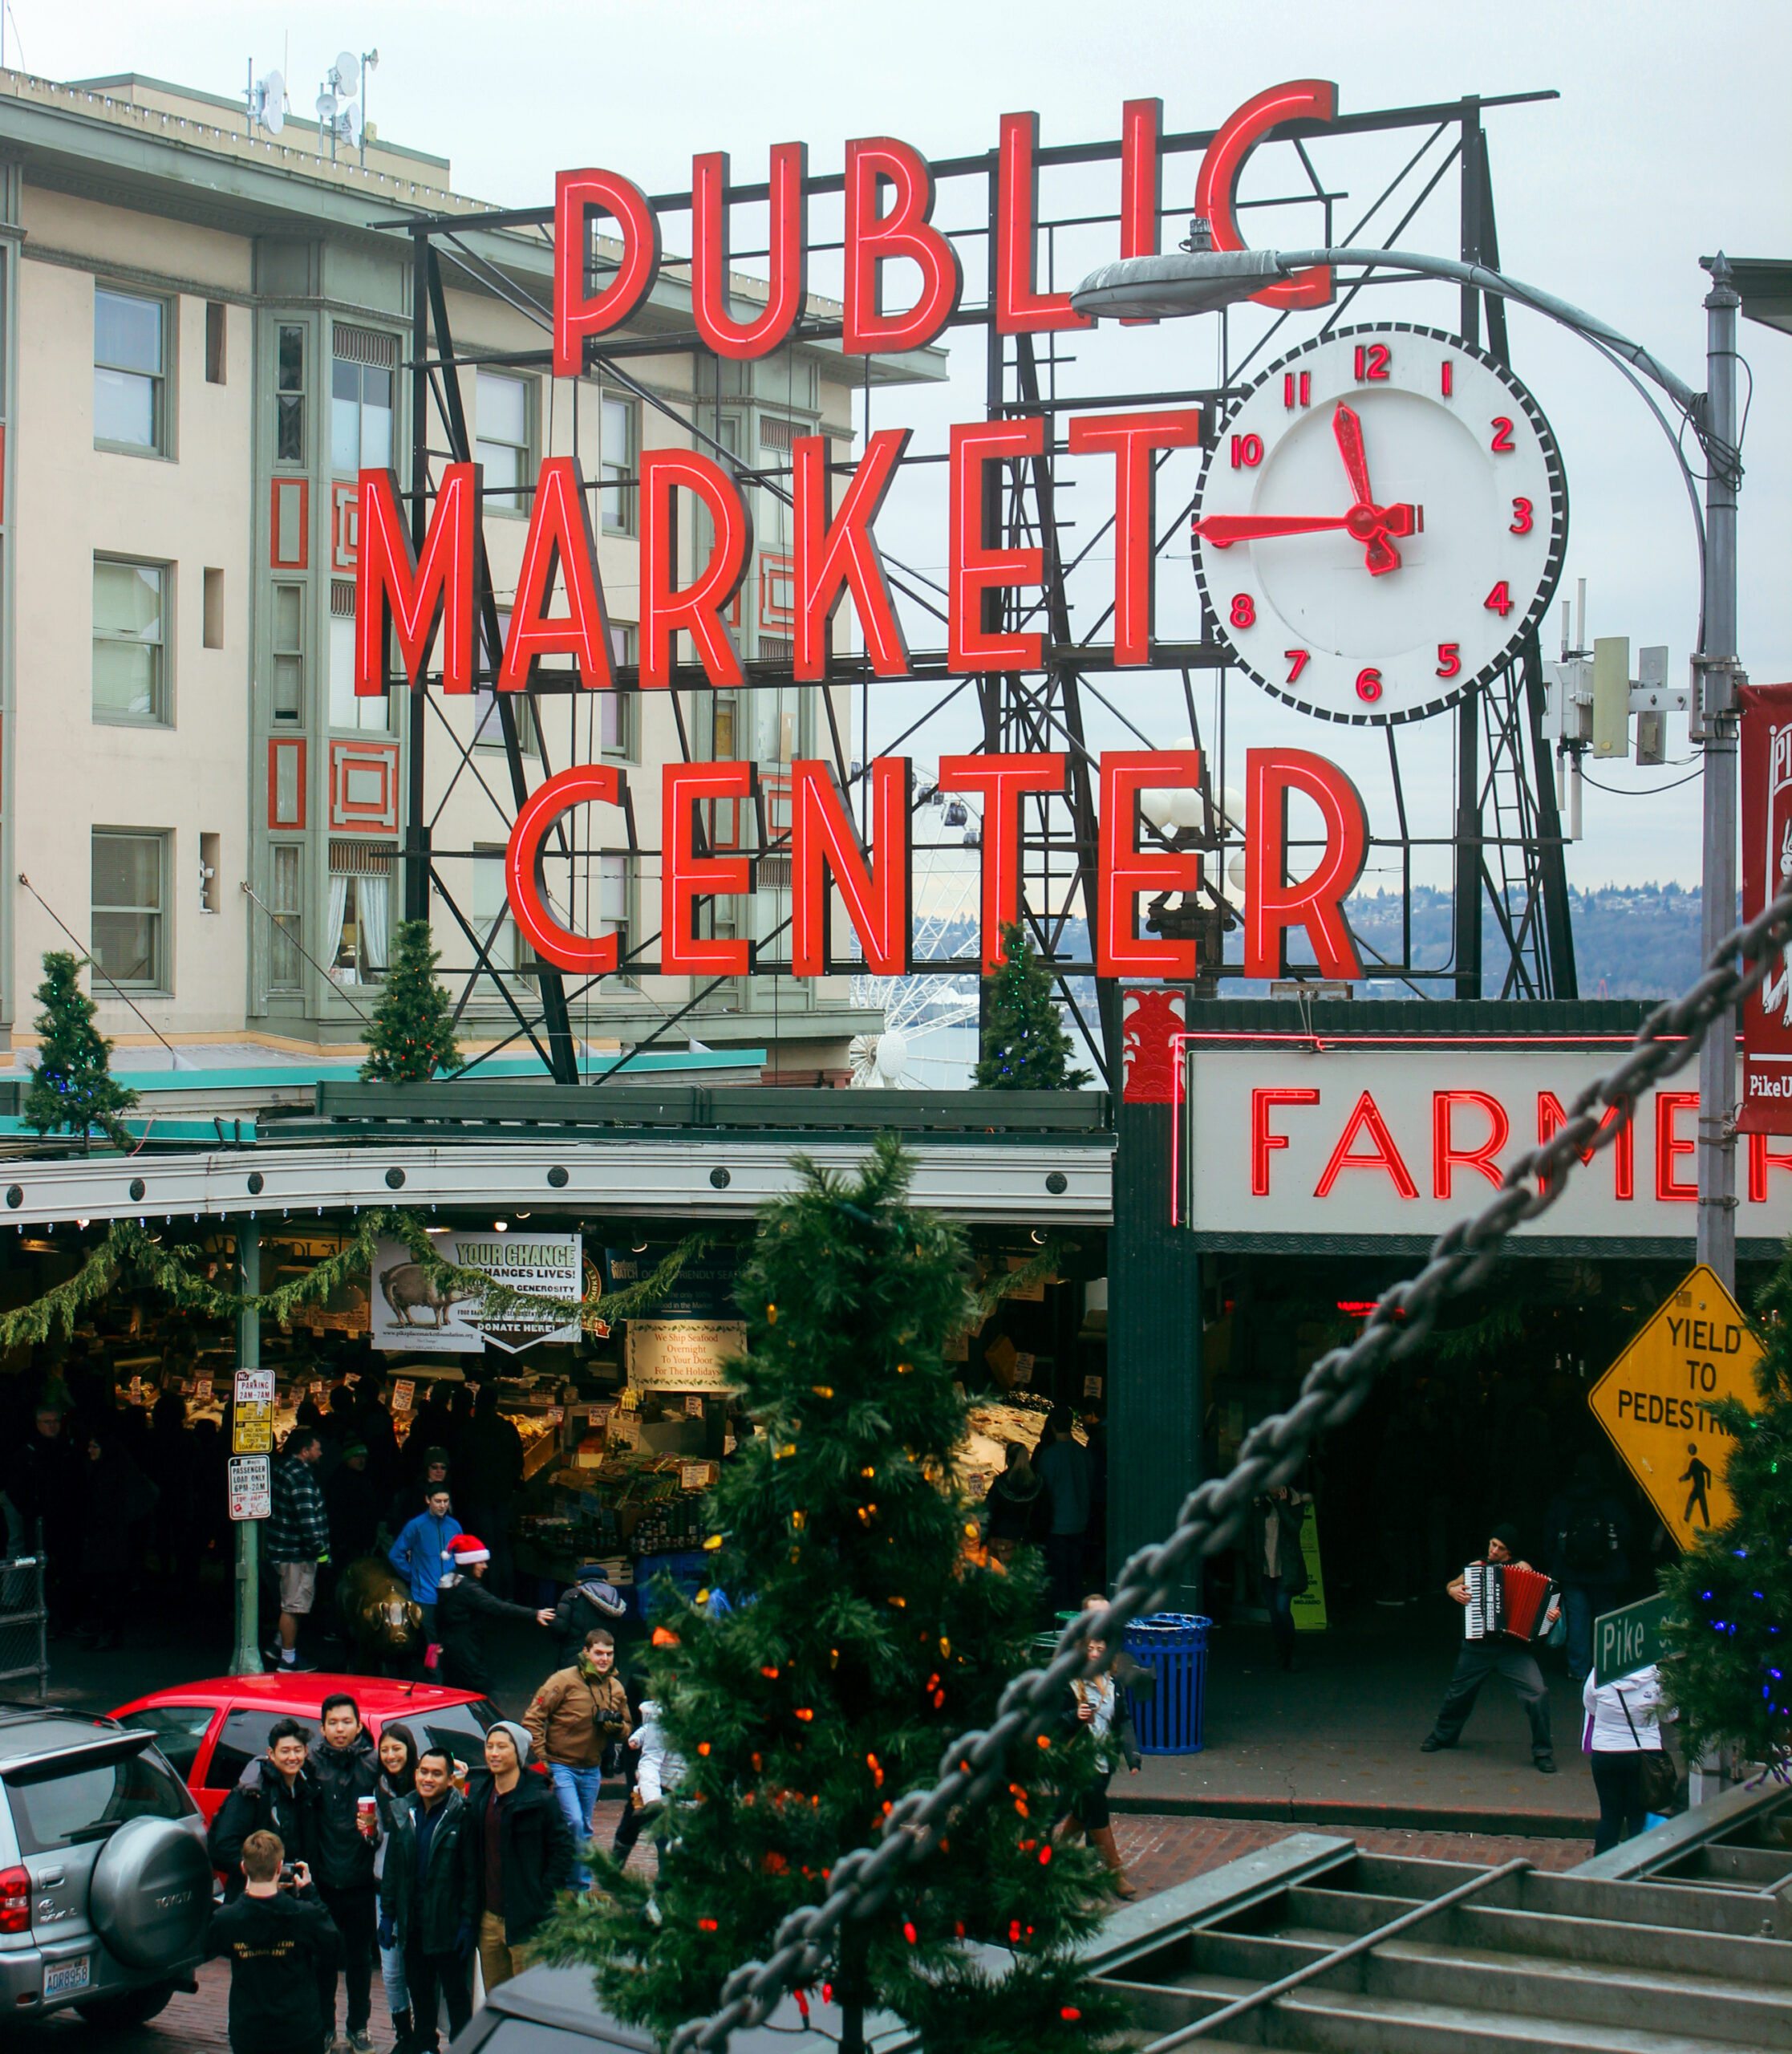 A photo of the main entrance of pike place market, showing christmas decorations, a group posing for a photo, a dancing accordion player, and the iconic neon sign.